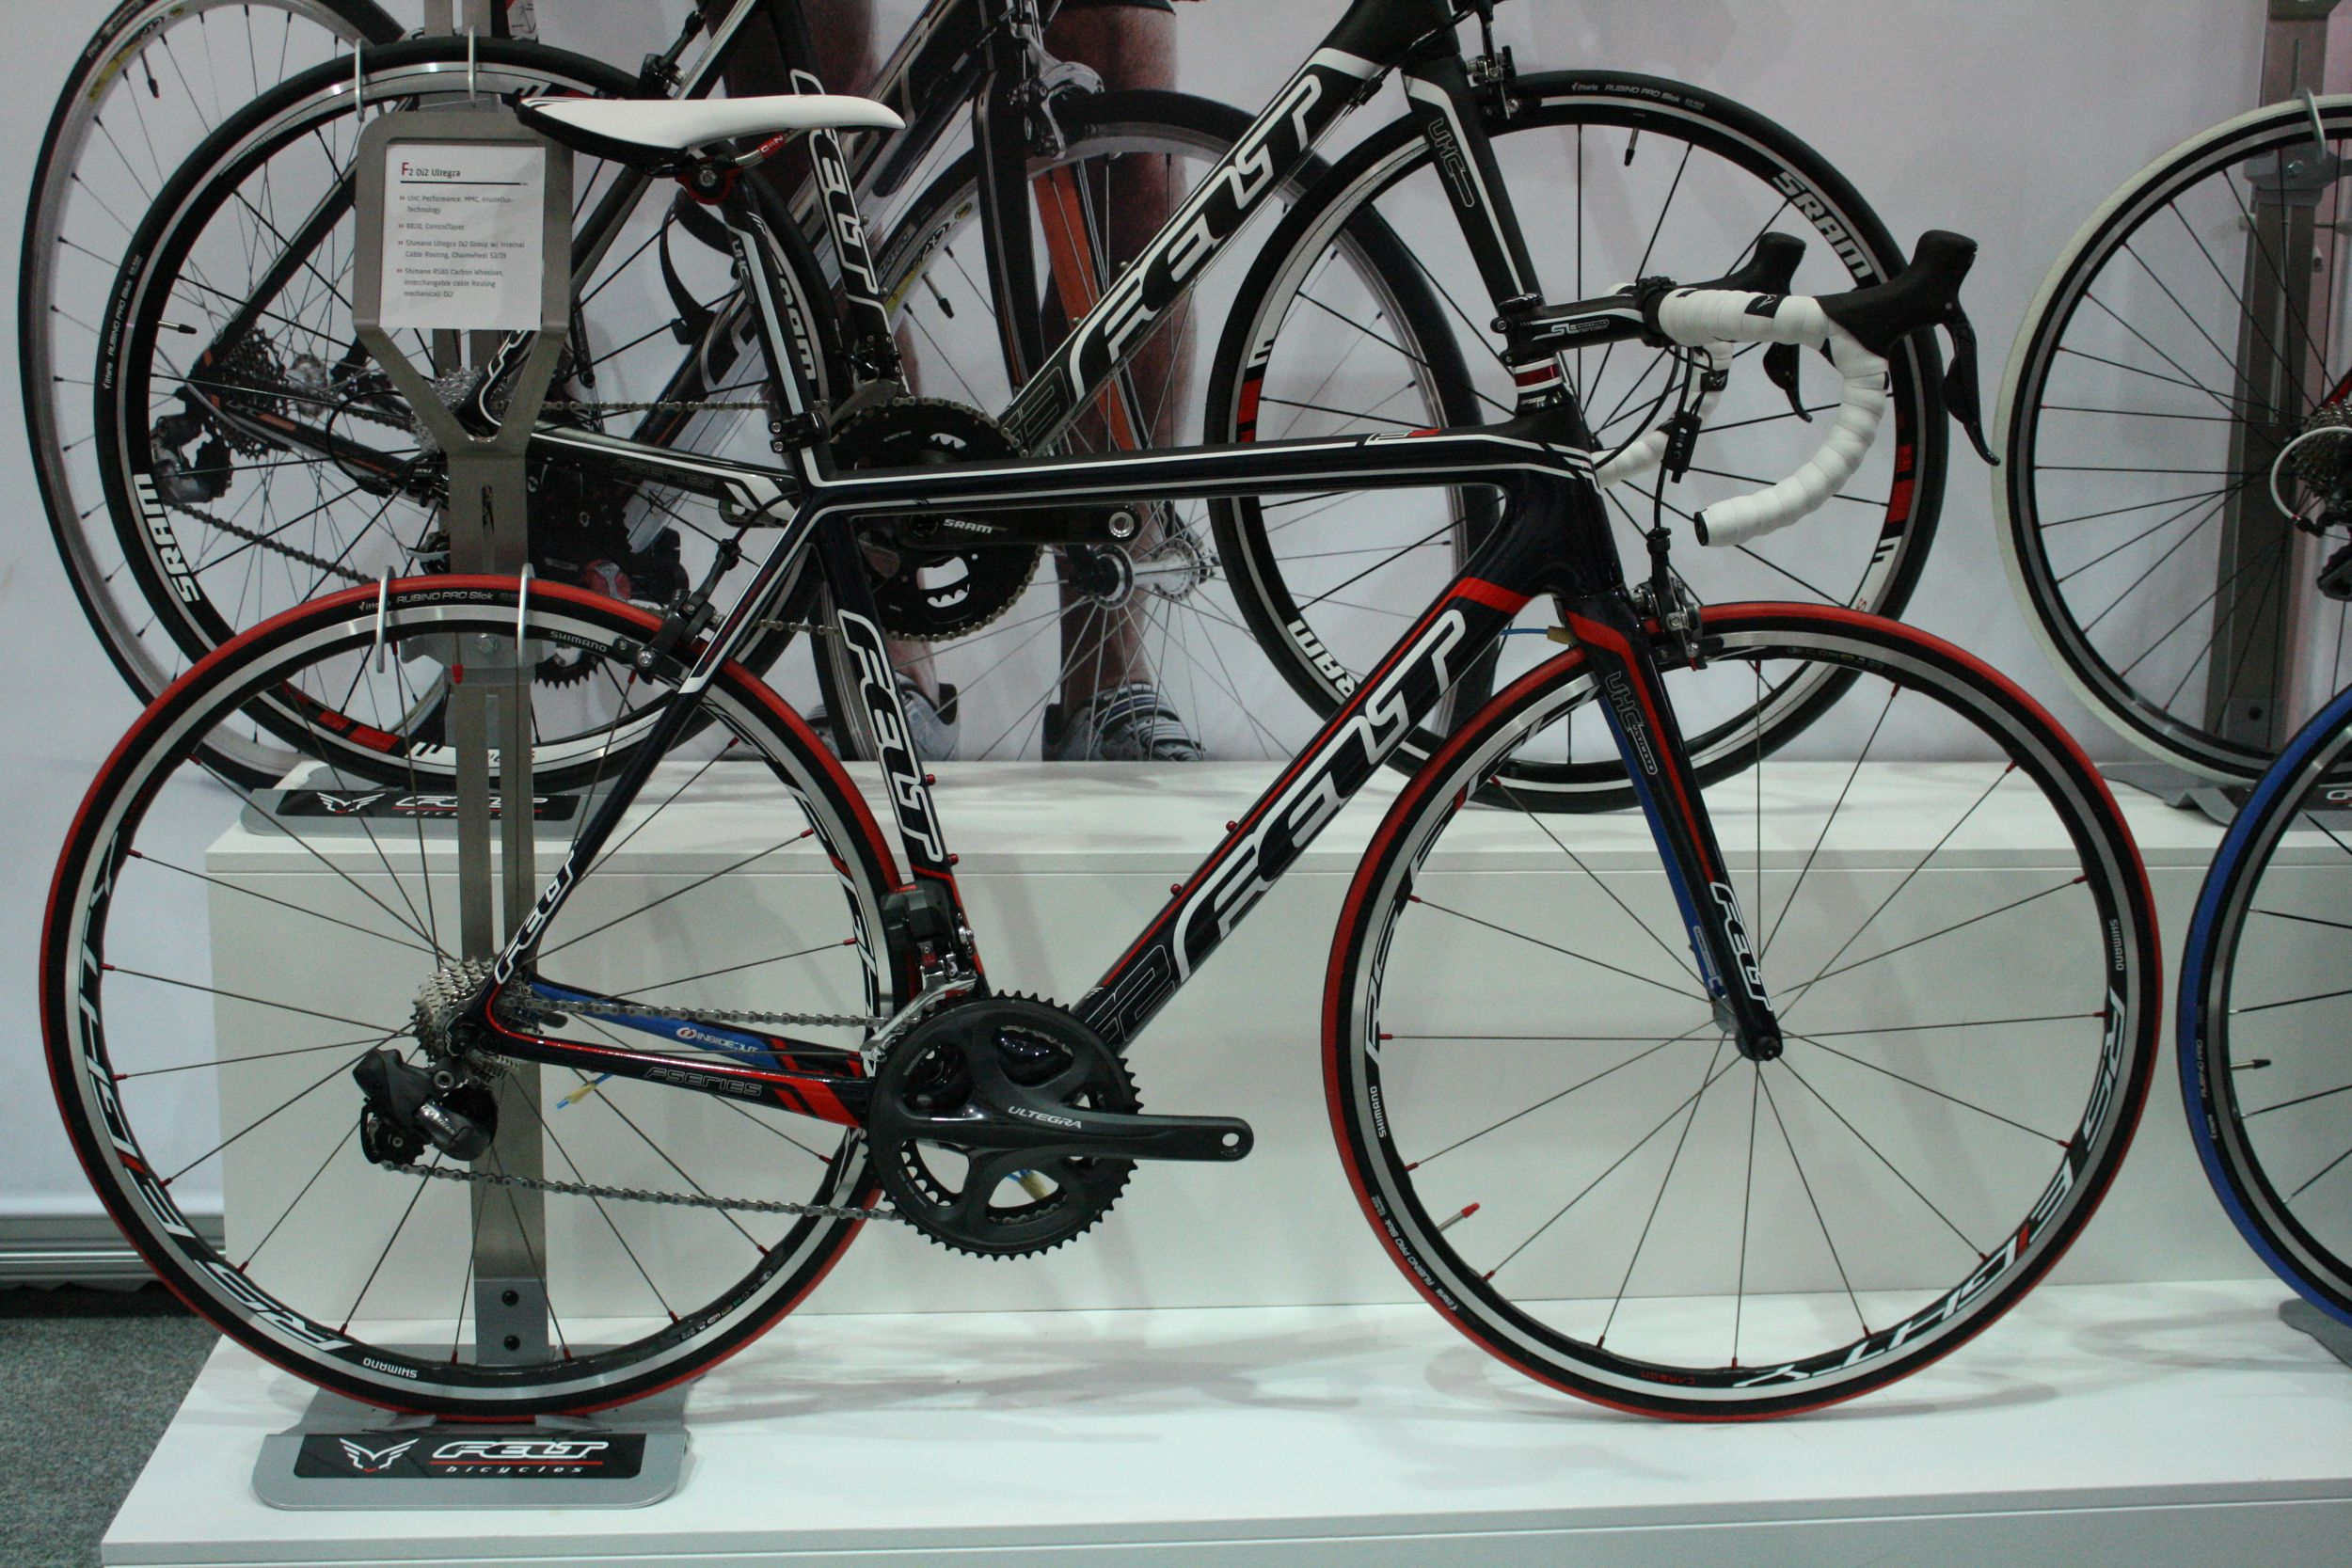 2012 road bikes from Viner, Felt and Giant | road cc